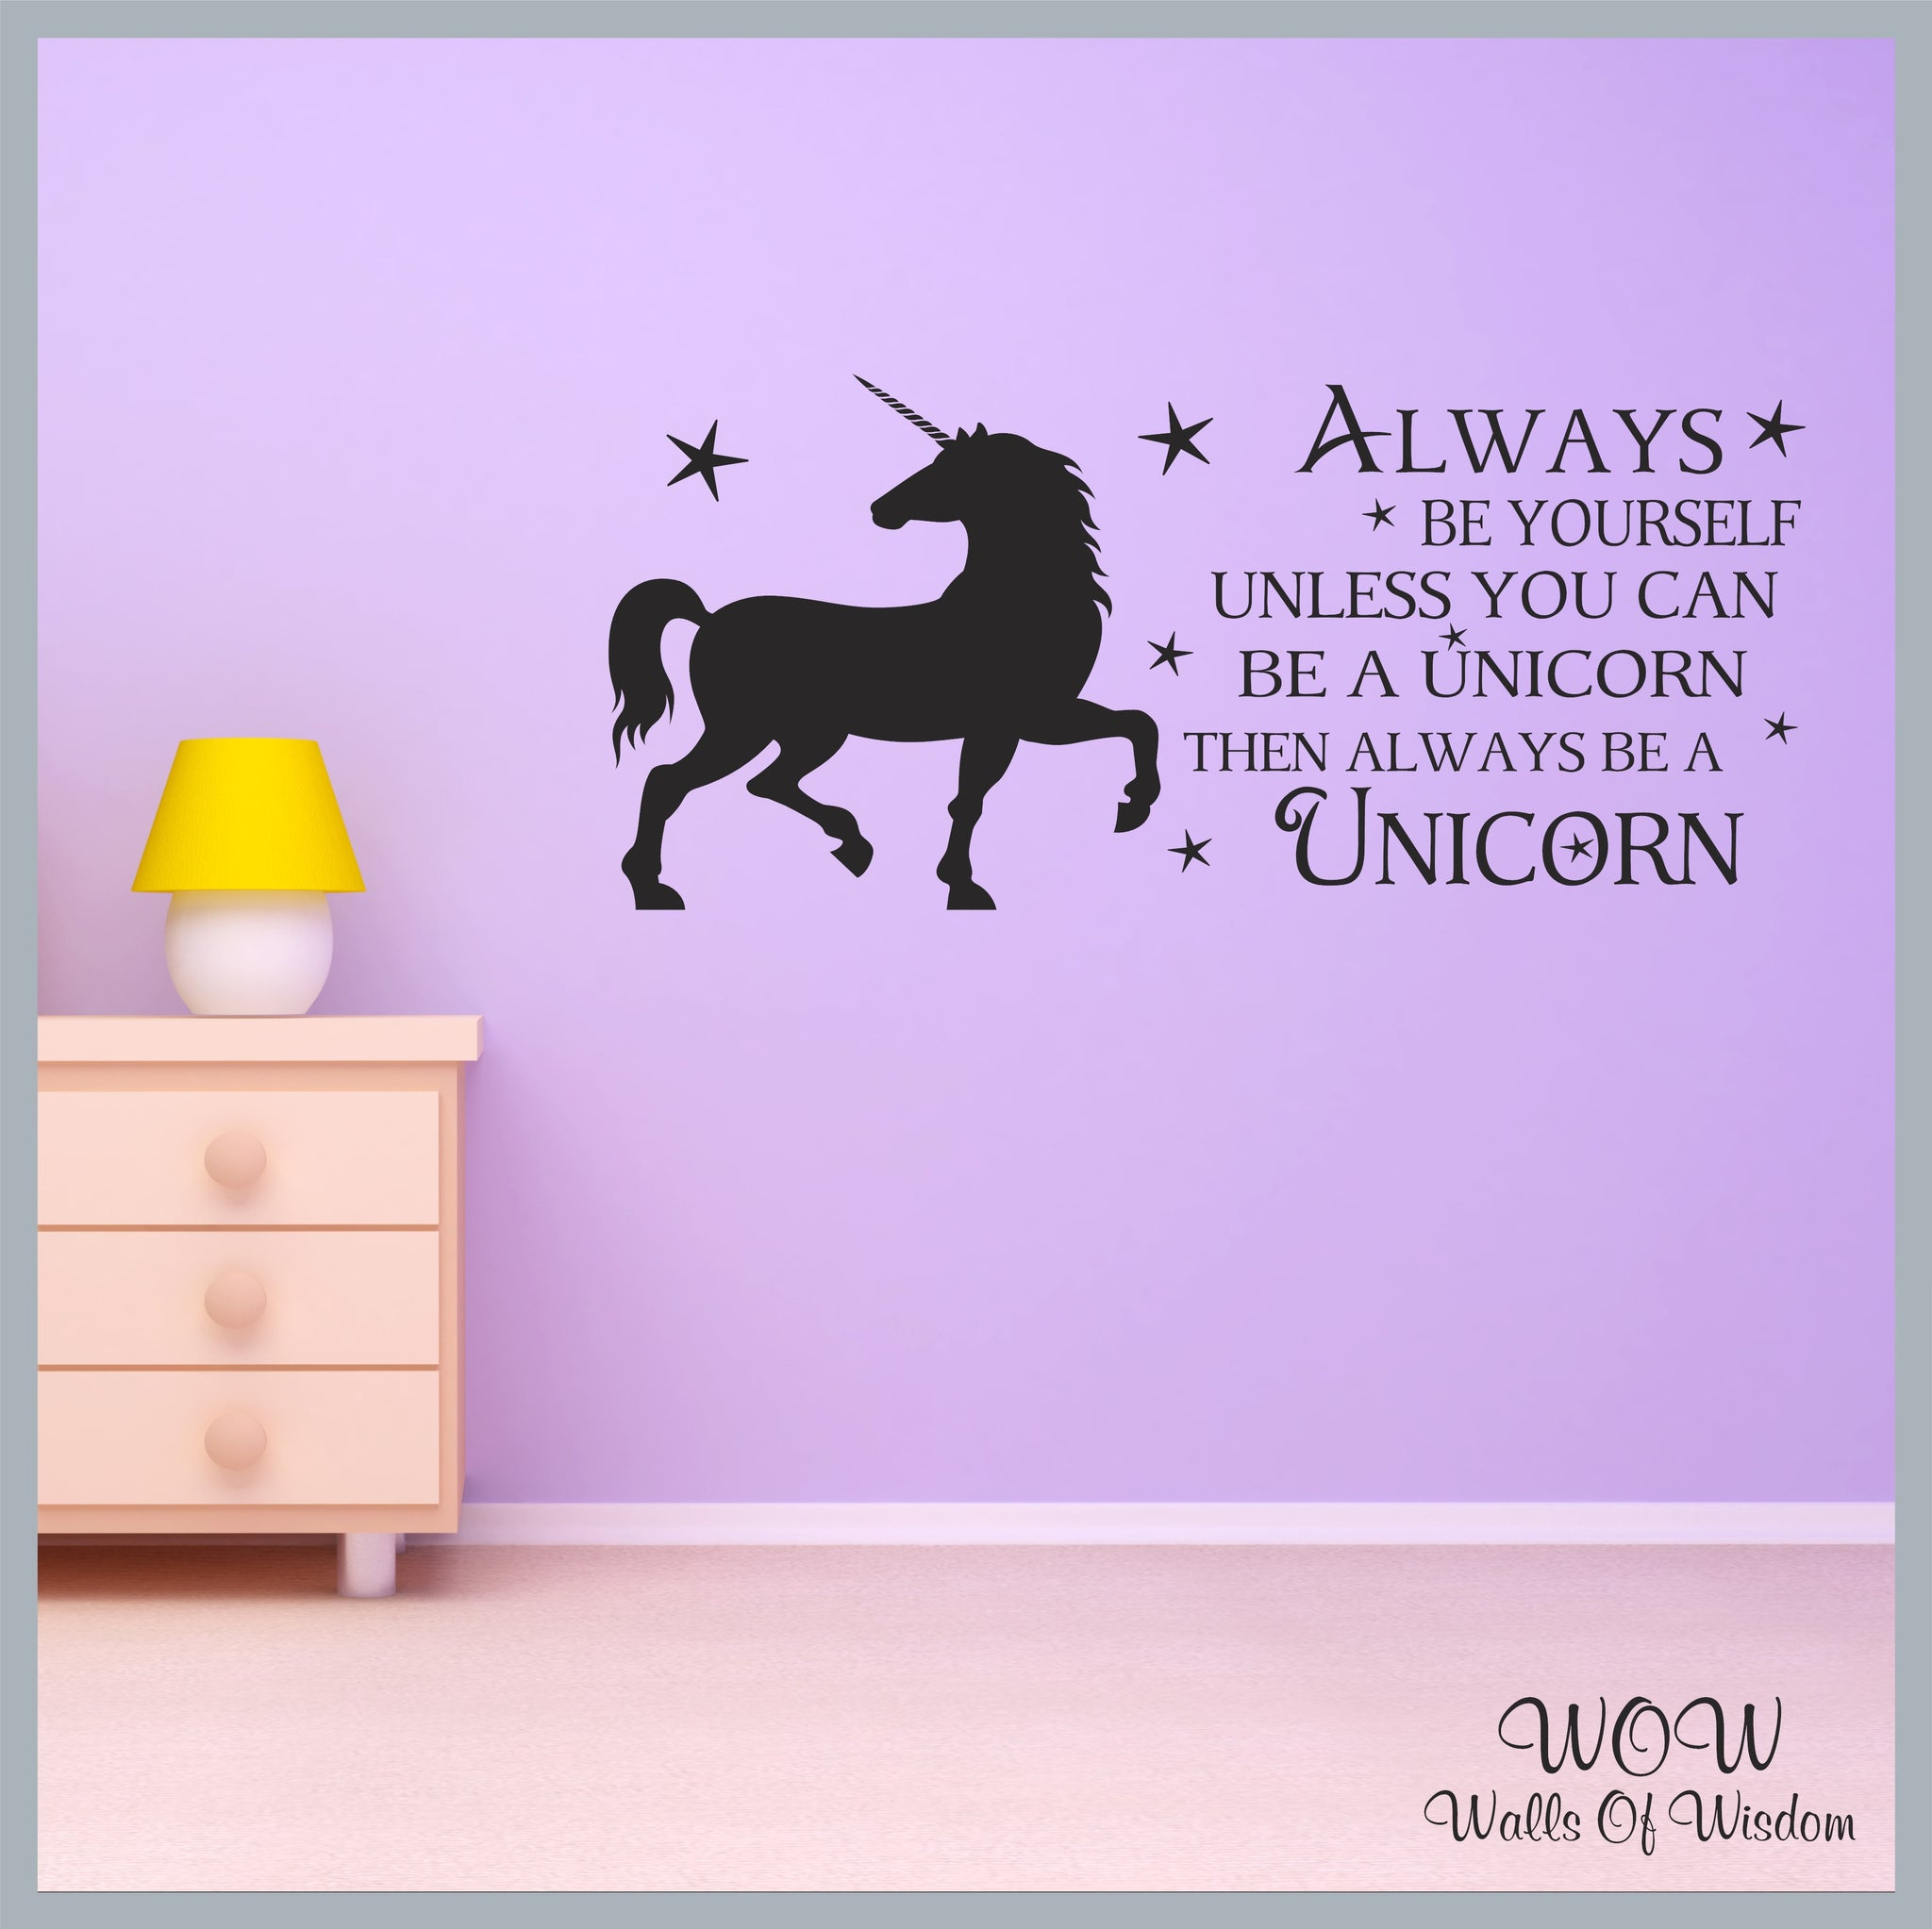 FREE UK Delivery Wall Stickers & Decals - Unicorn Always Be Yourself. - Walls Of Wisdom